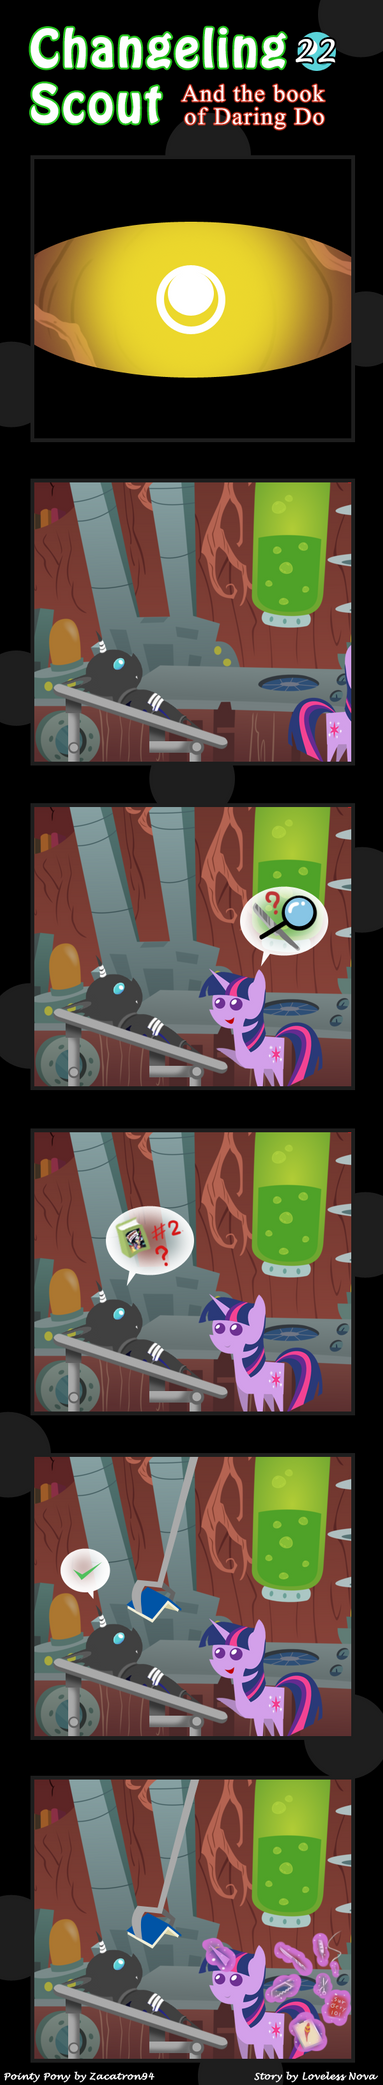 Changeling Scout And The Book Of Daring Do 22 by vavacung